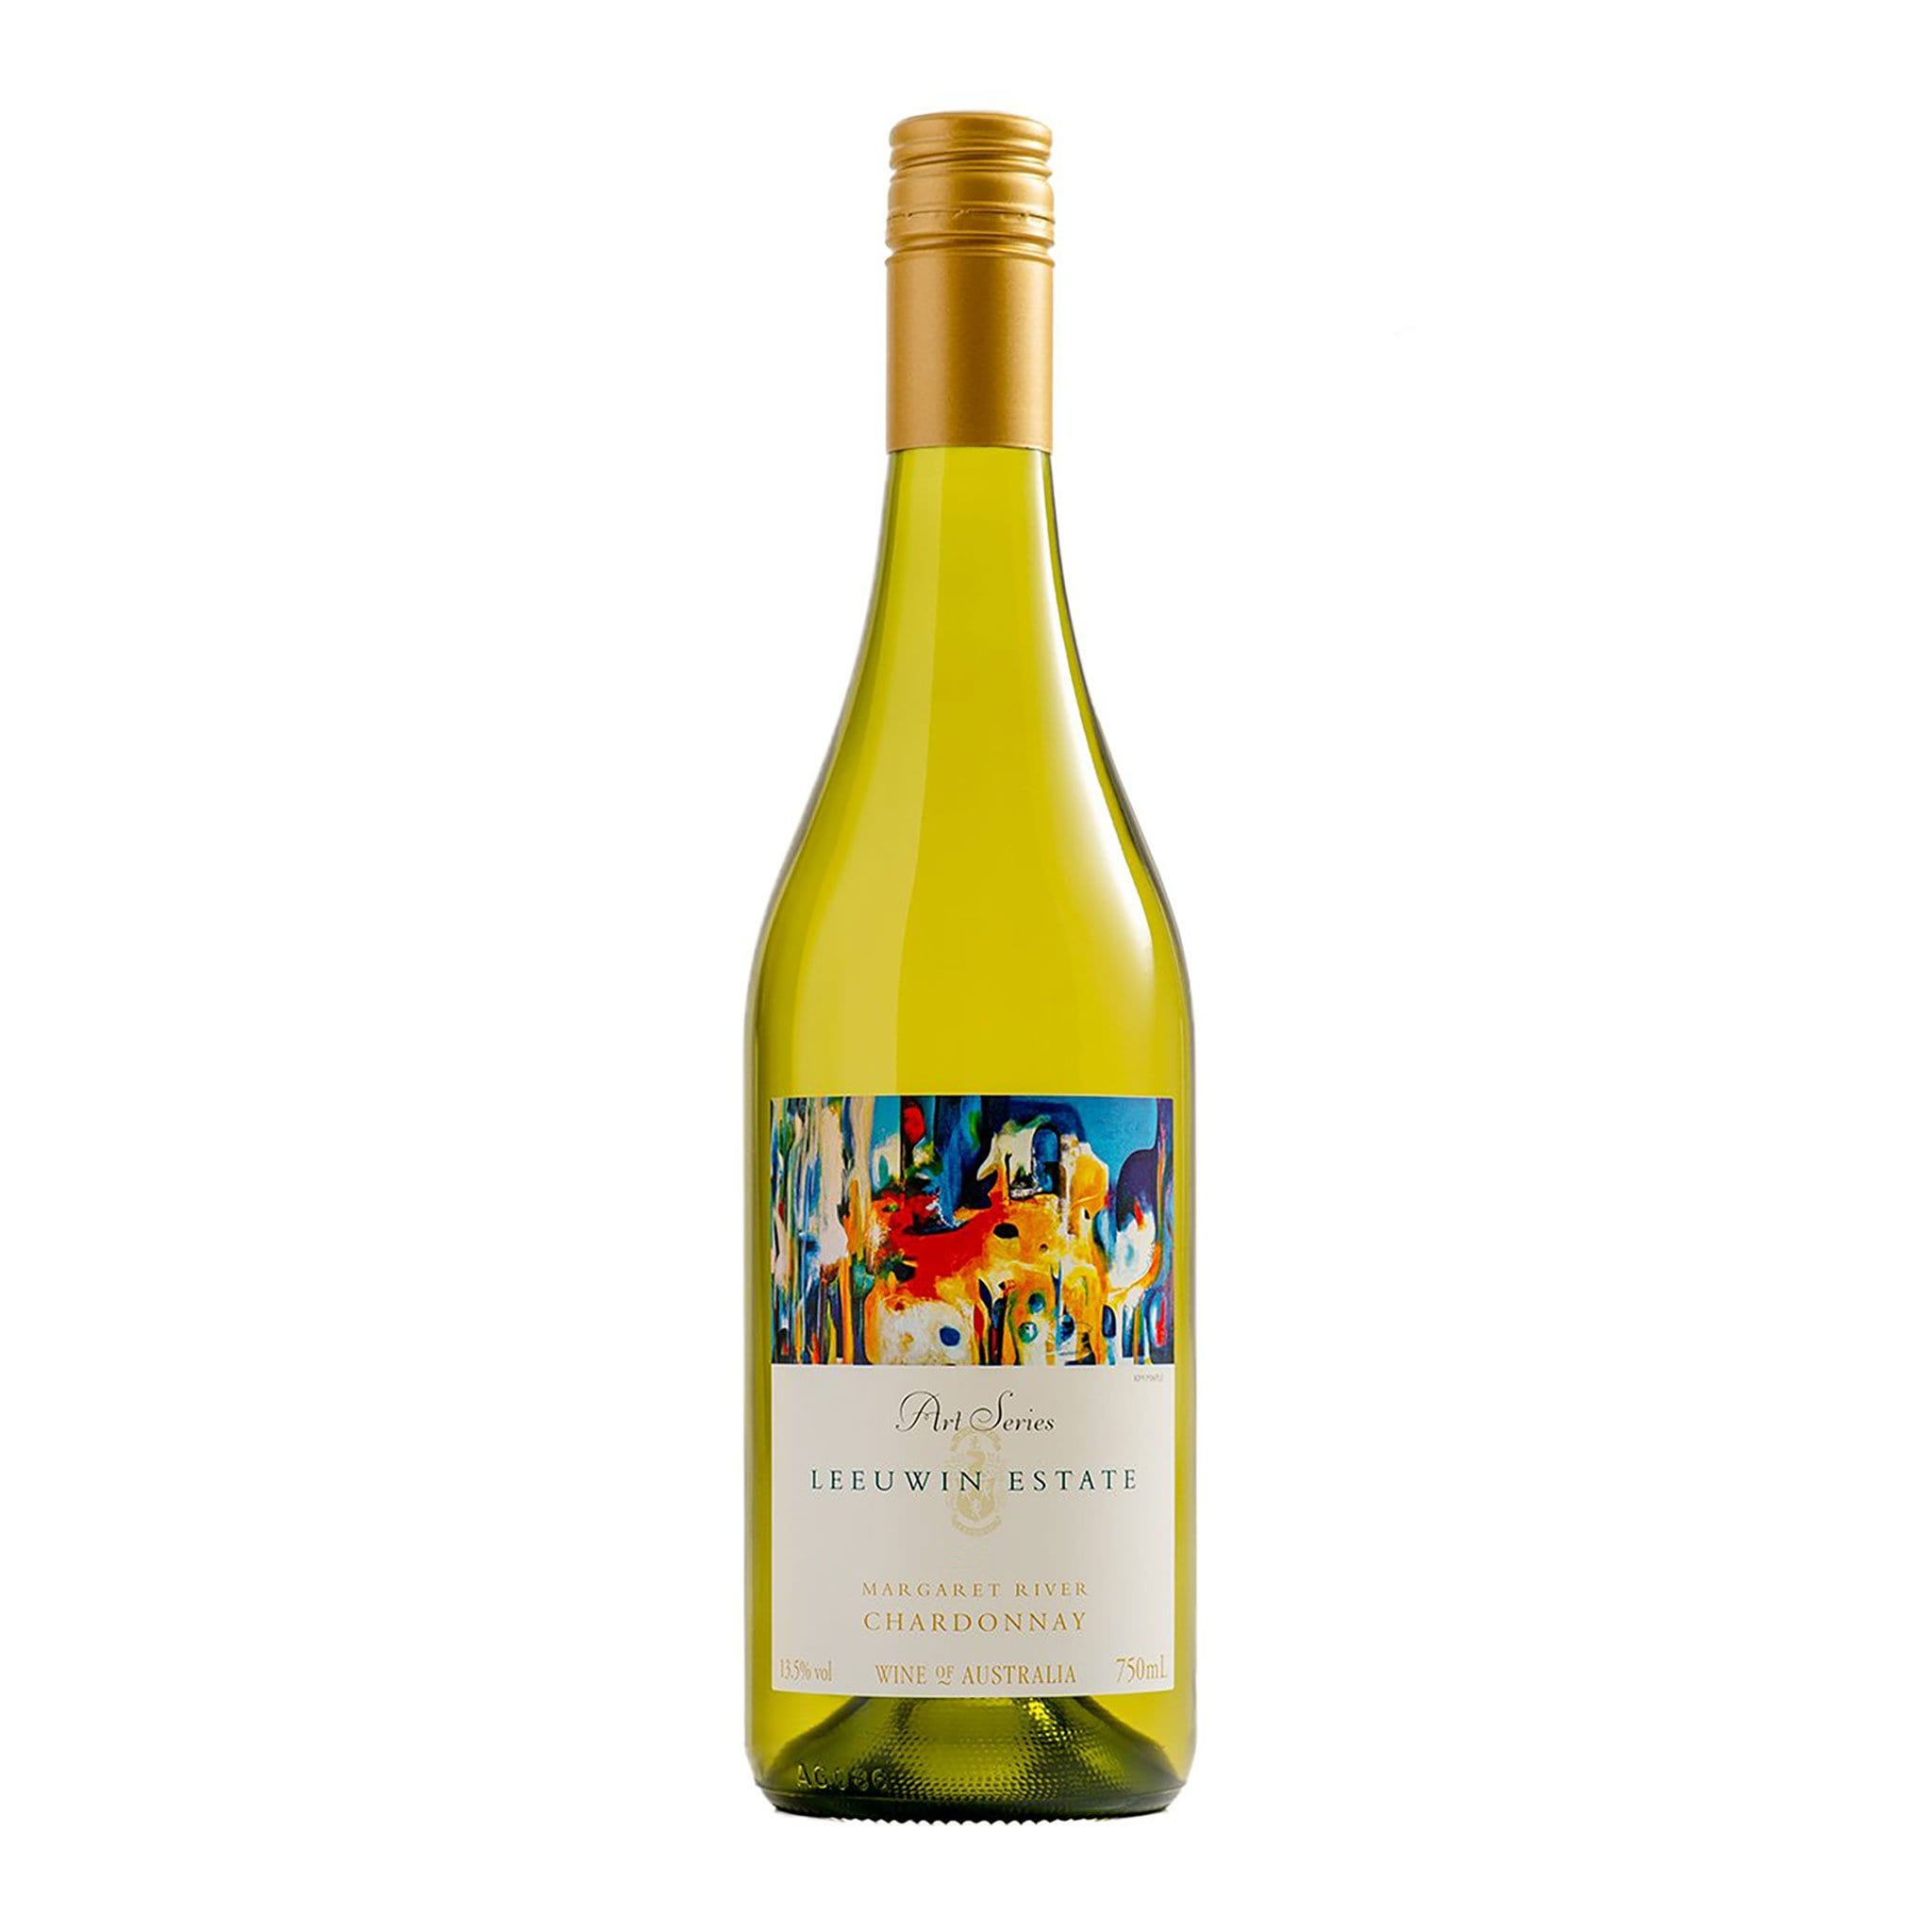 Leeuwin Estate Art Series Chardonnay 2016 - Kent Street Cellars